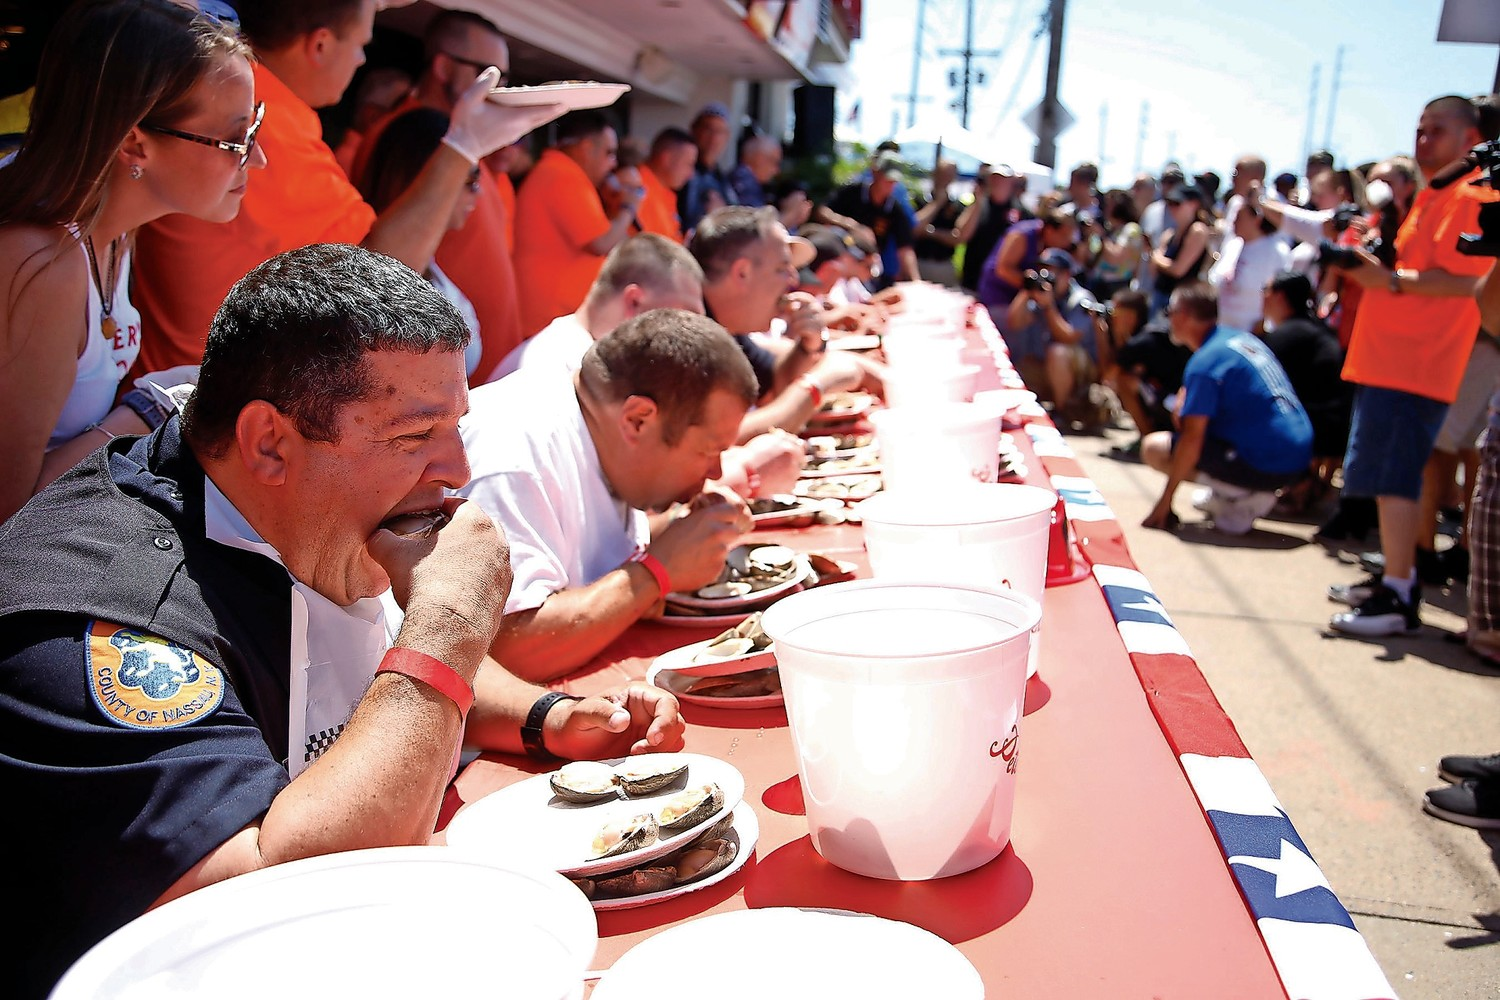 Peter's Clam Bar's Clam Eating contest draws hundreds firefighters and civilians from all over. This year the contest is set for Aug. 19.